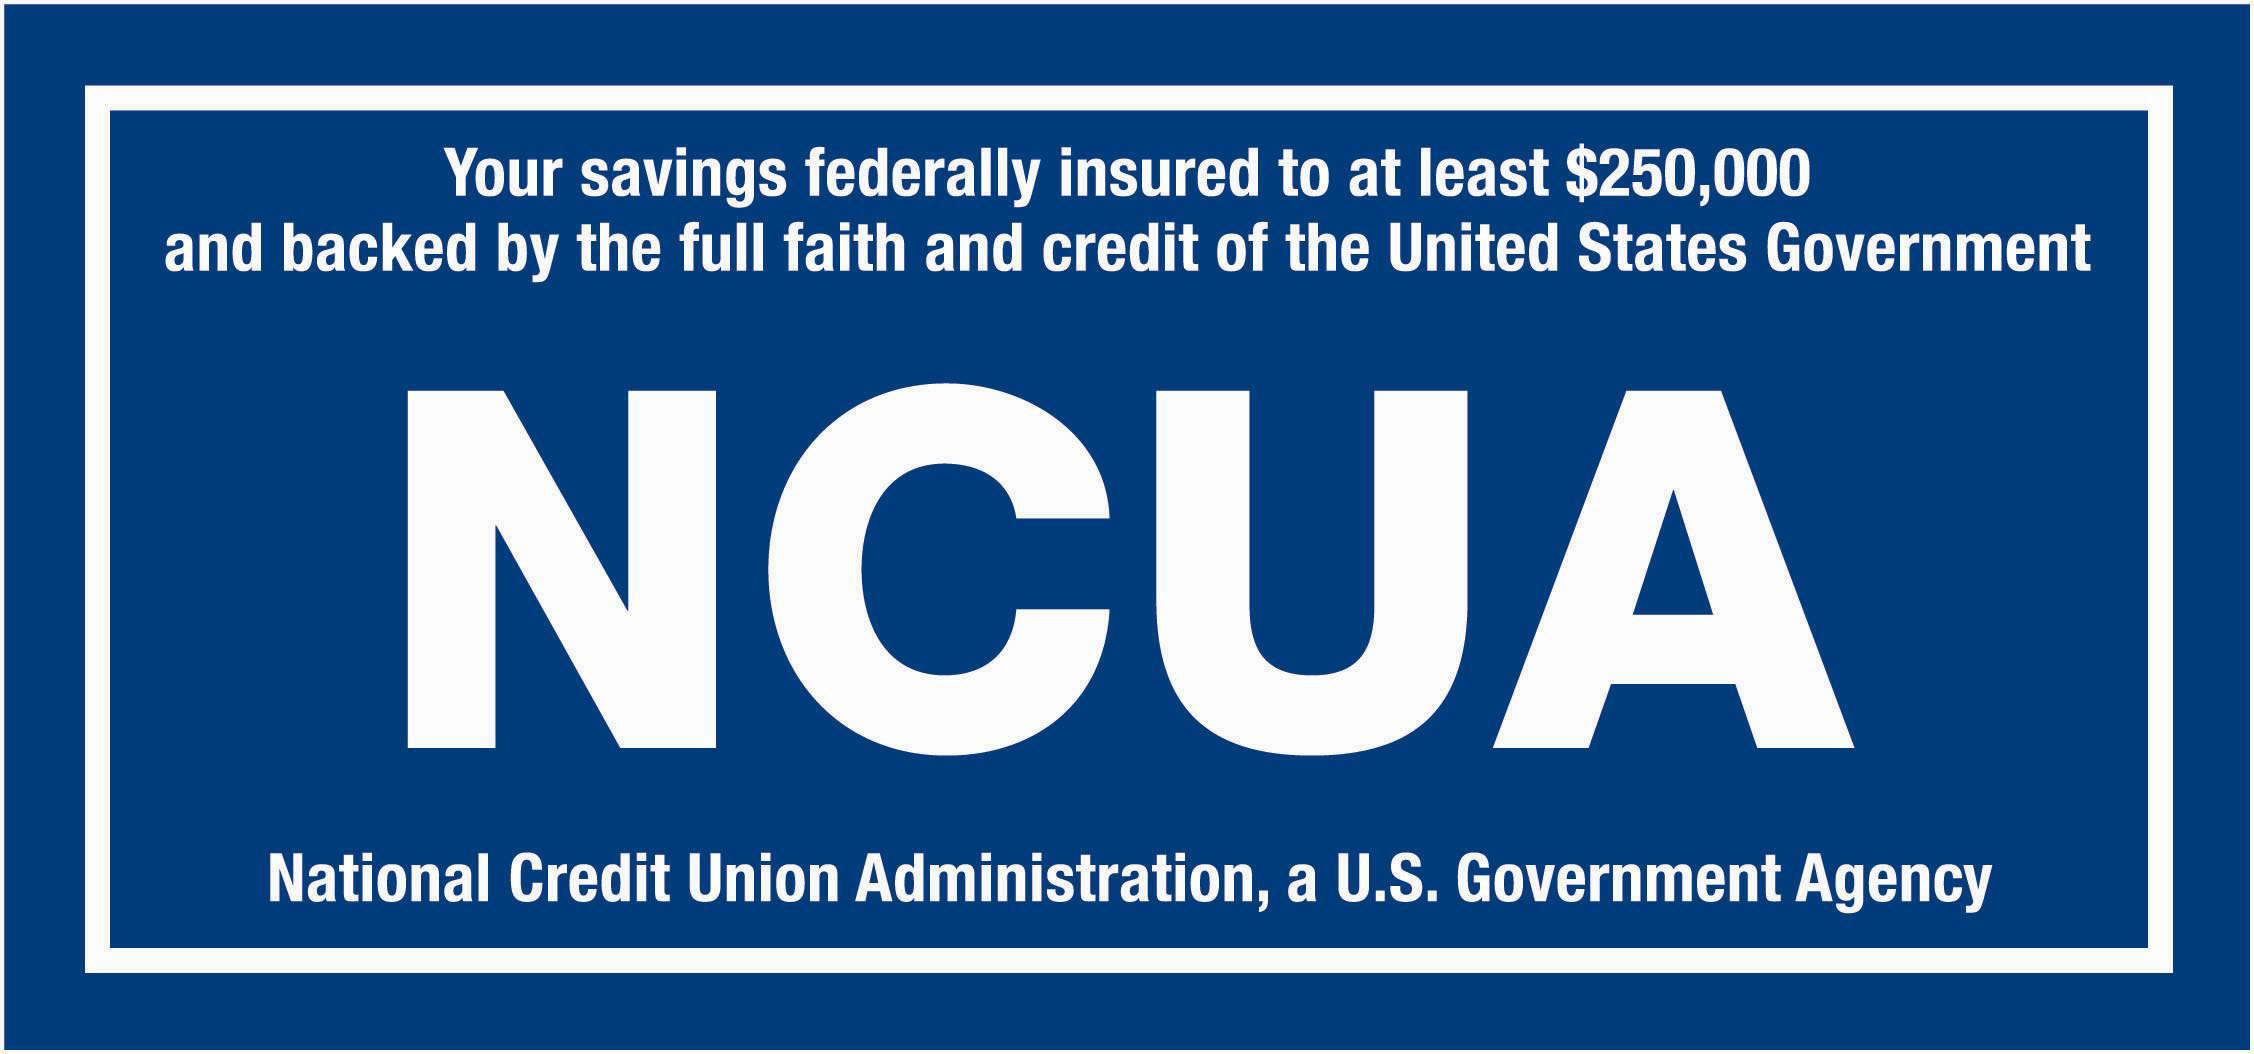 Your savings federally insured up to $250,000 and backed by the full faith and credit of the United States government.  NCUA.  National Credit Union Administration, a U.S. Government Agency